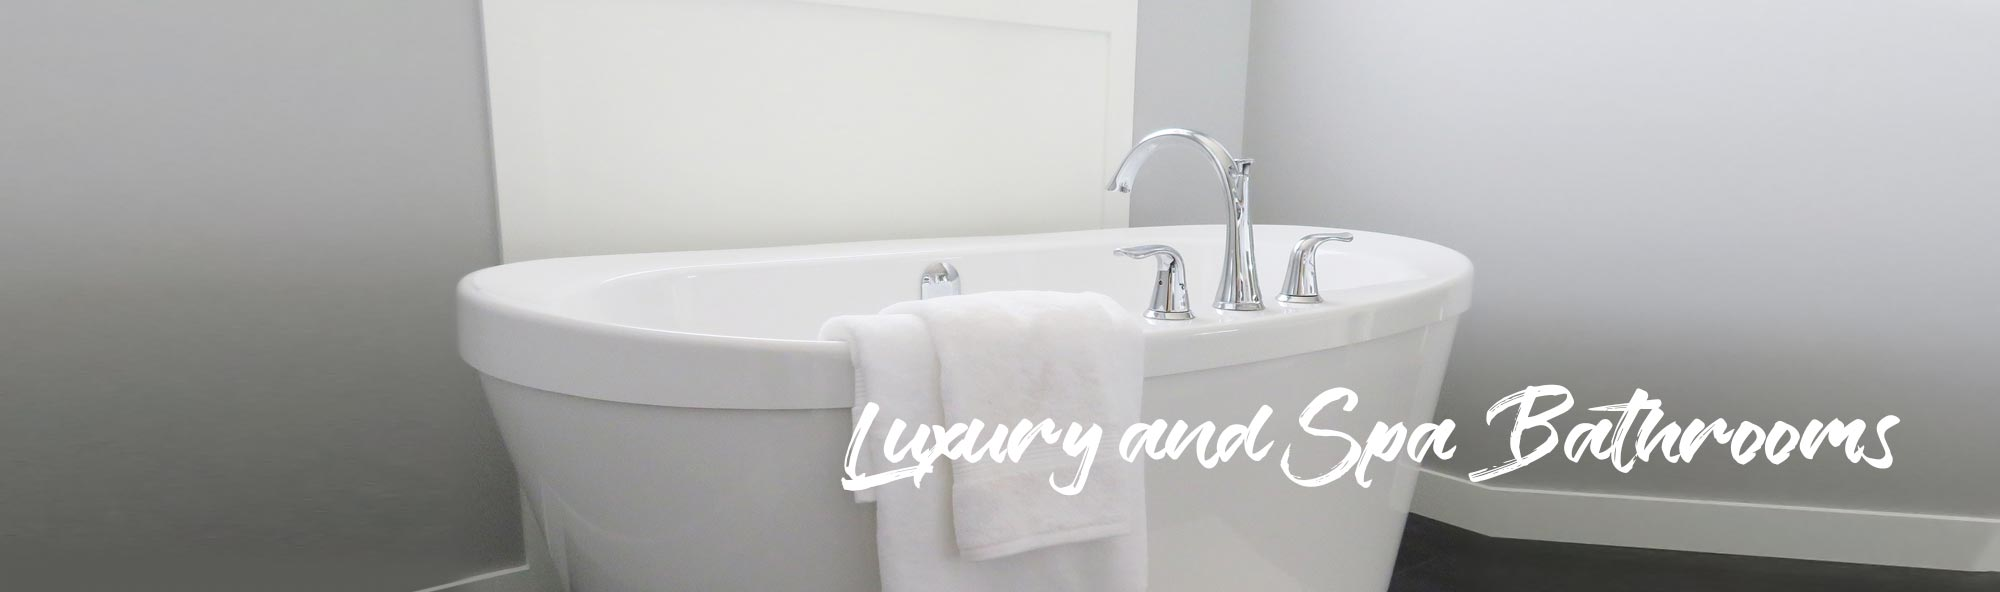 luxury-and-spa-bathrooms, Kitchen Renovation, Bathroom Renovation, House Renovation Auckland